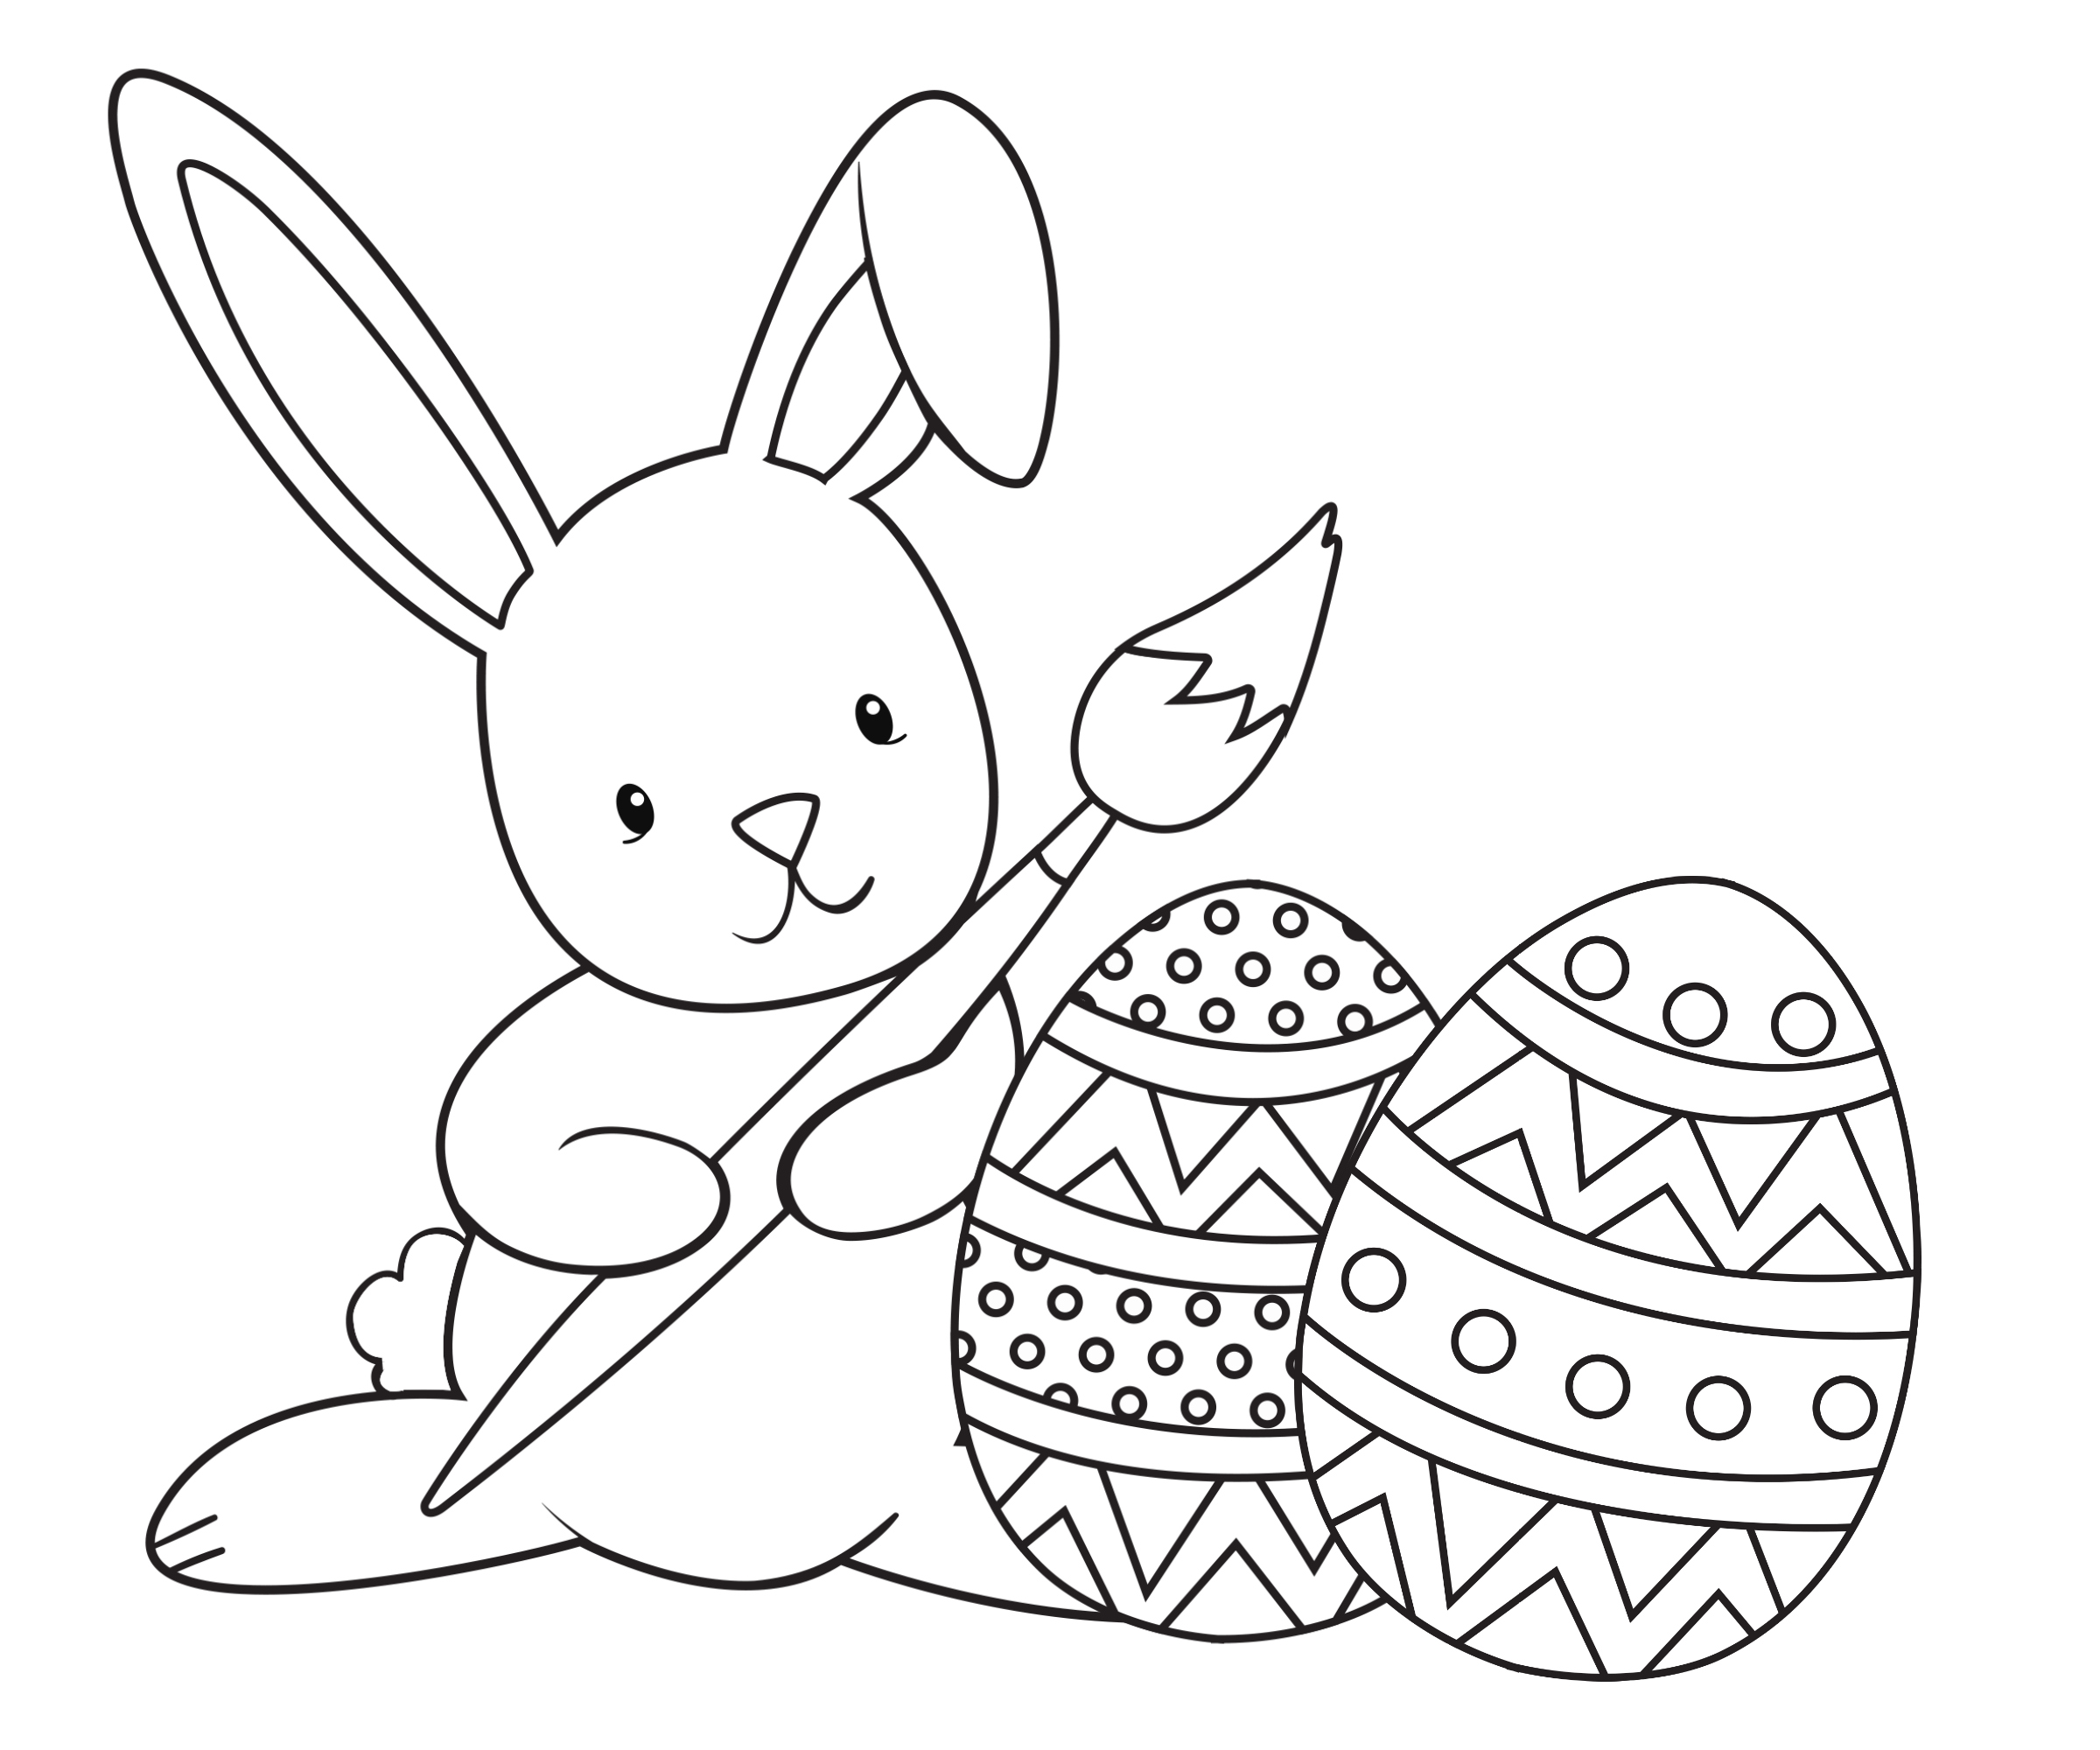 coloring pages easter eggs - photo#5